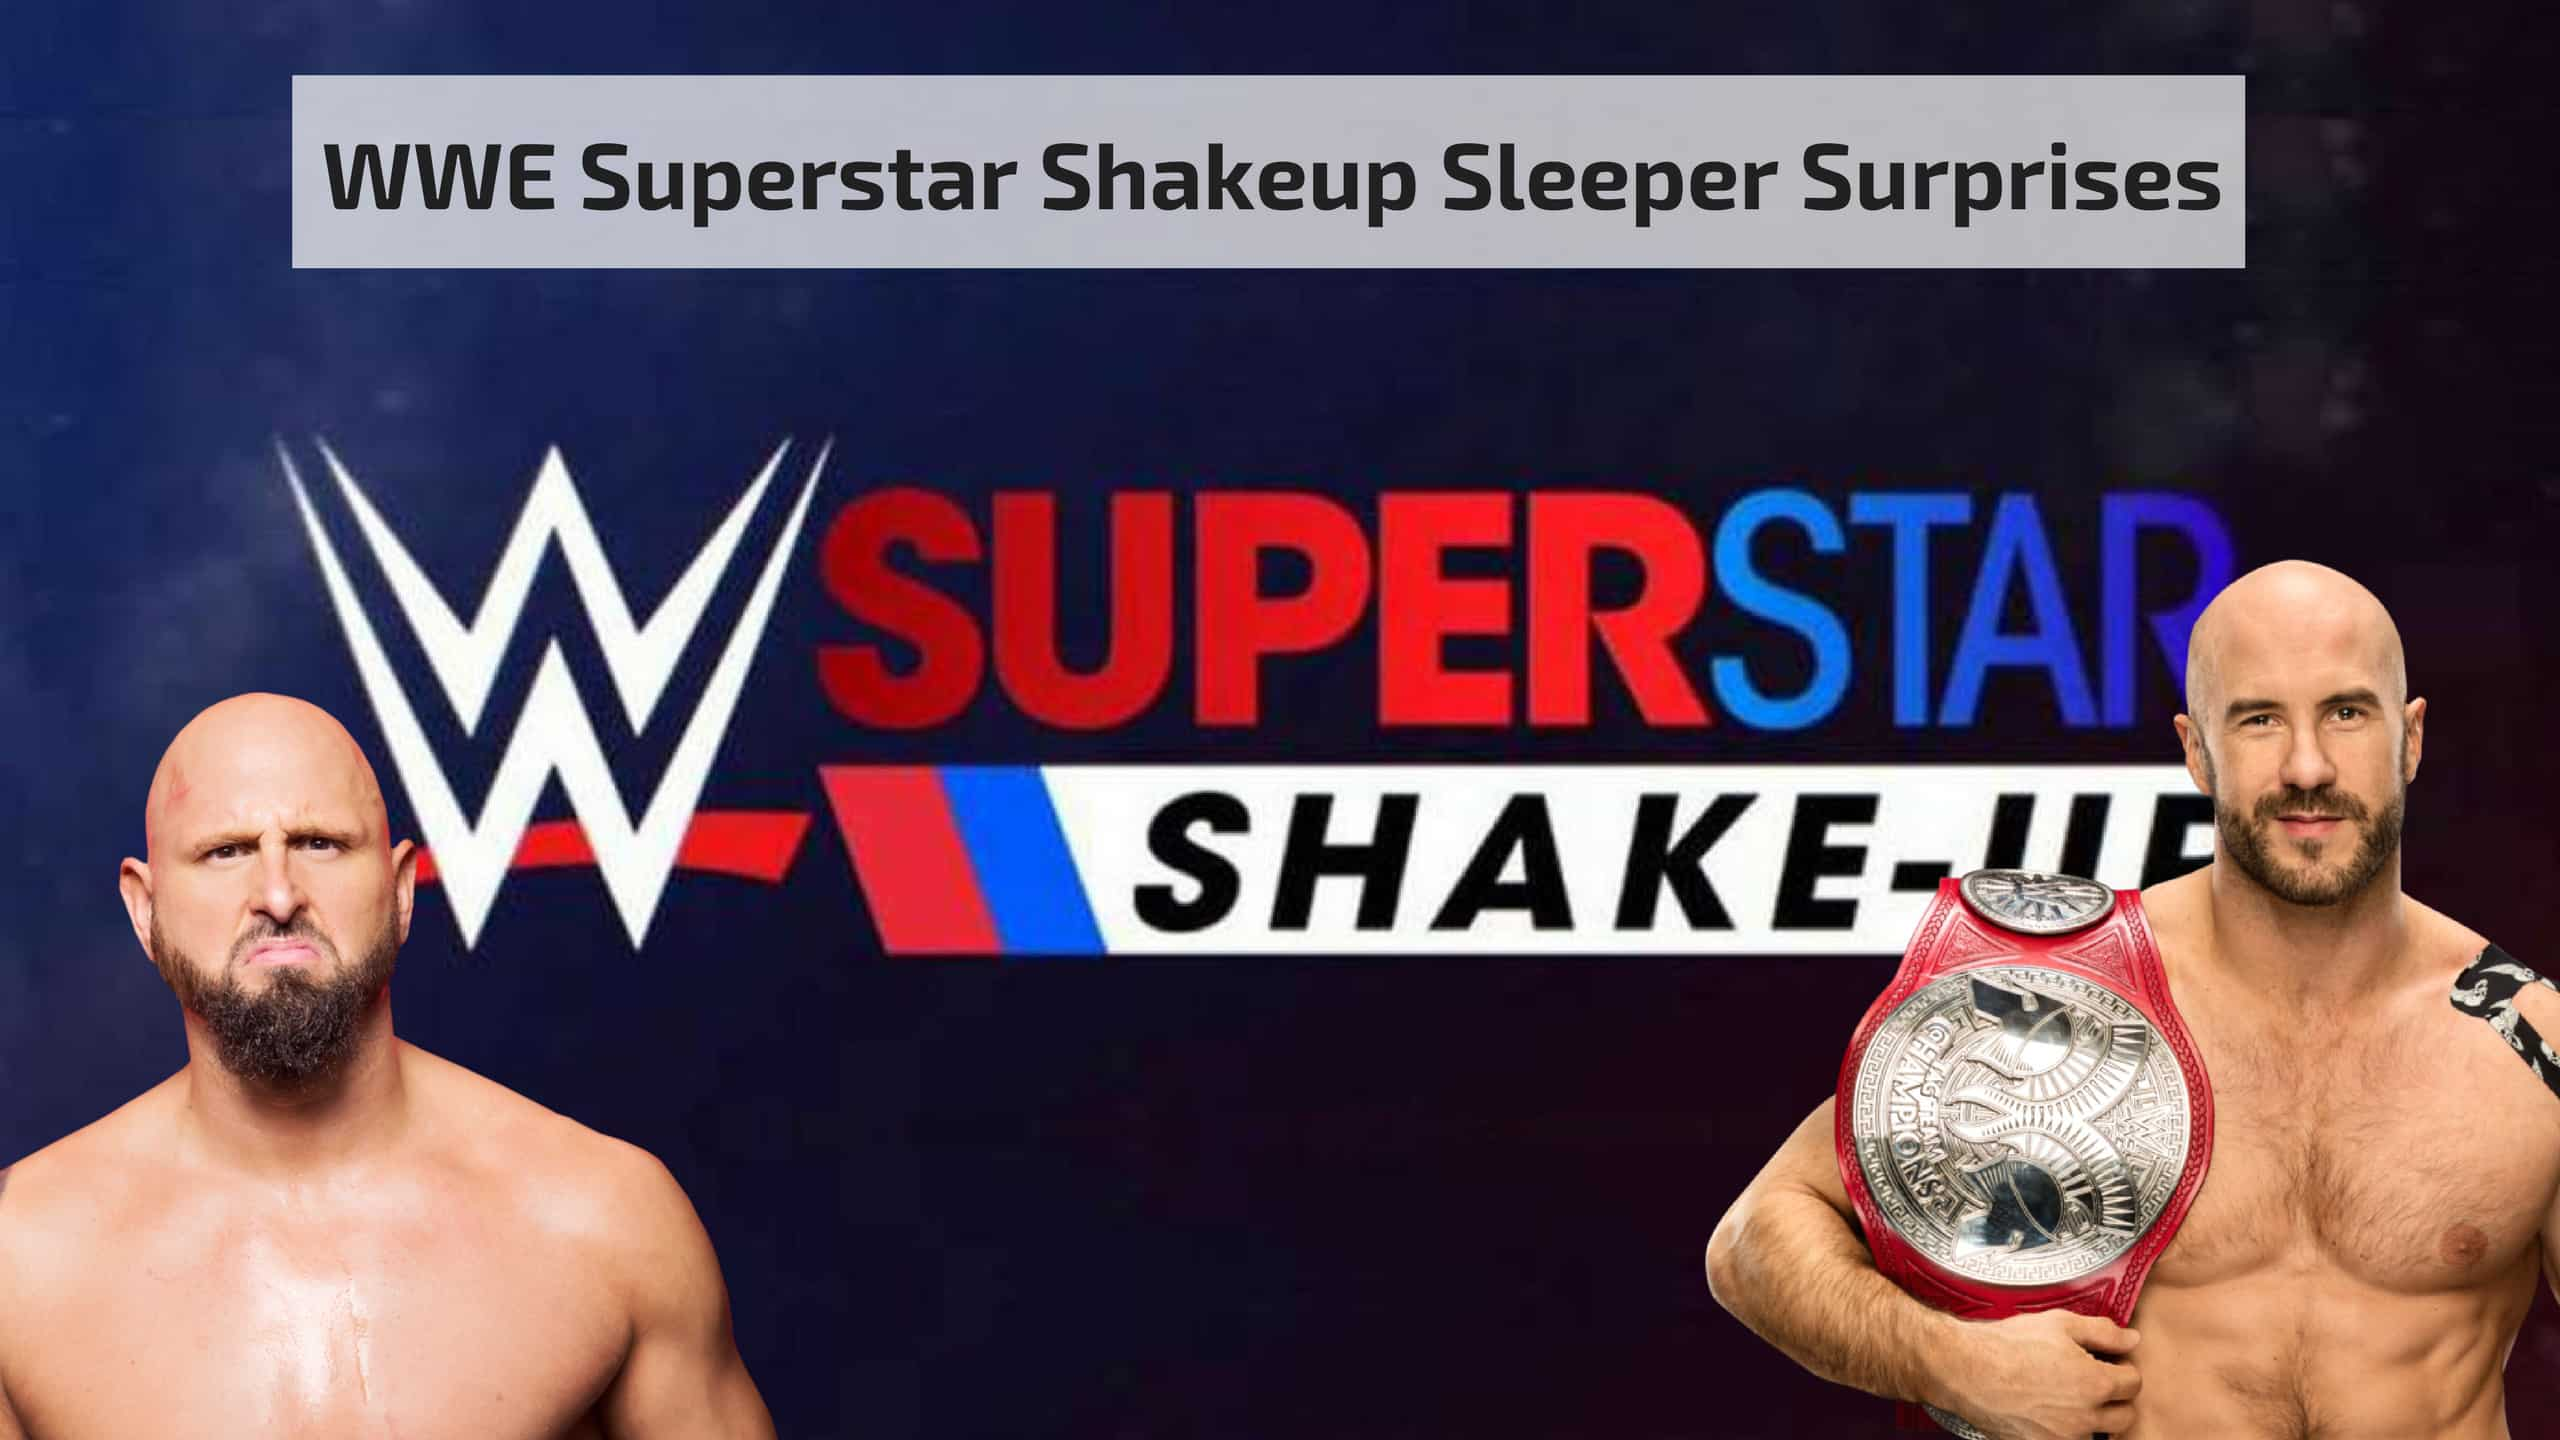 WWE Superstar Shakeup Sleeper Surprises